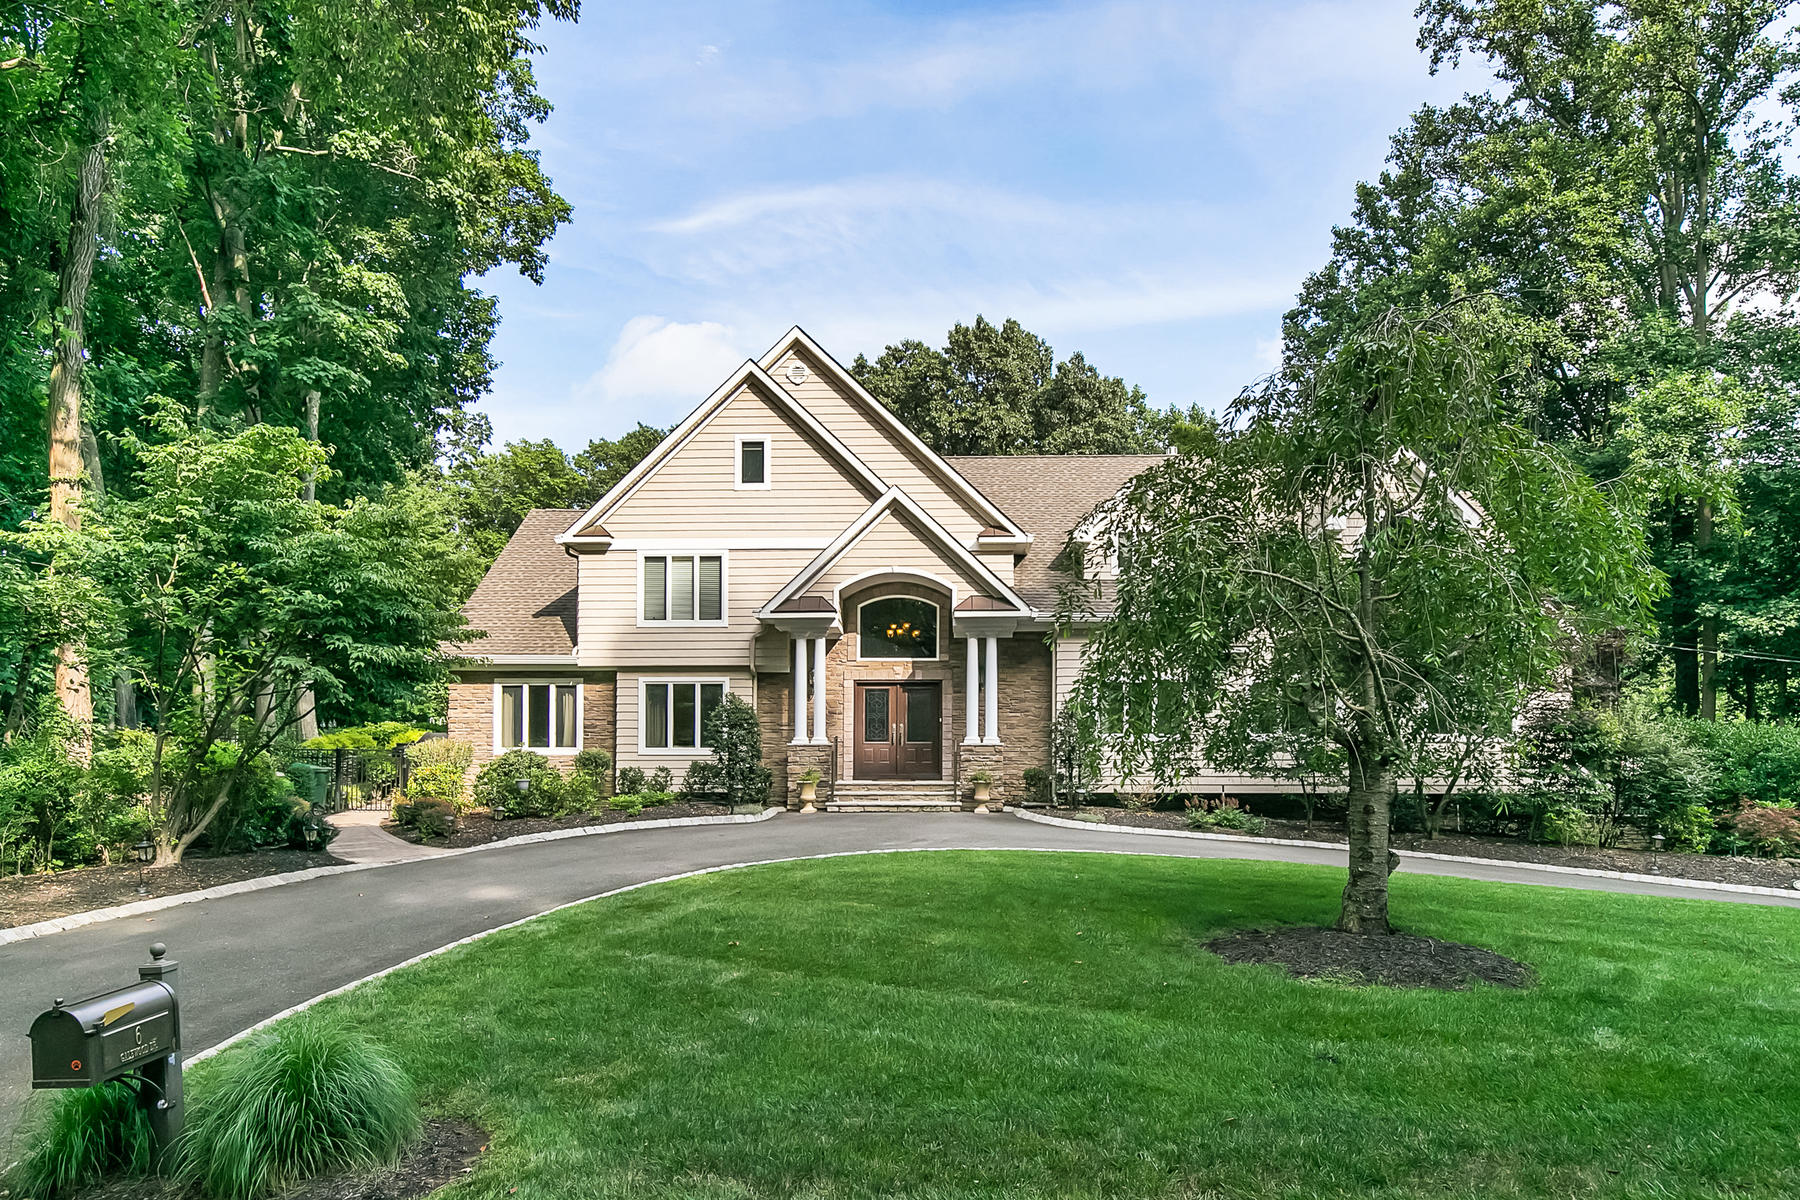 Single Family Homes pour l Vente à Custom Home with Pool 6 Galewood Dr, Holmdel, New Jersey 07733 États-Unis